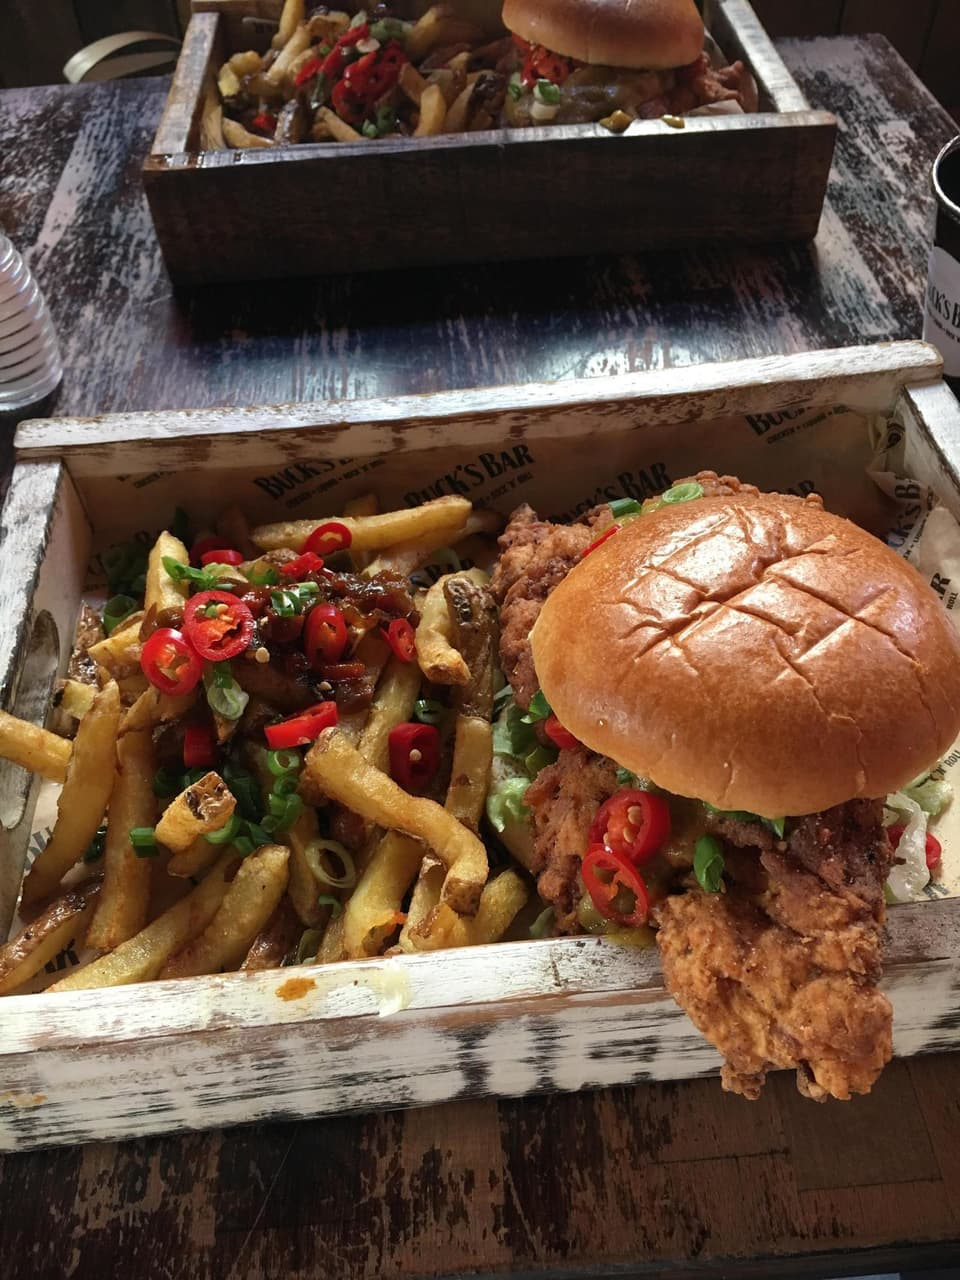 Chicken, burger, chips and food